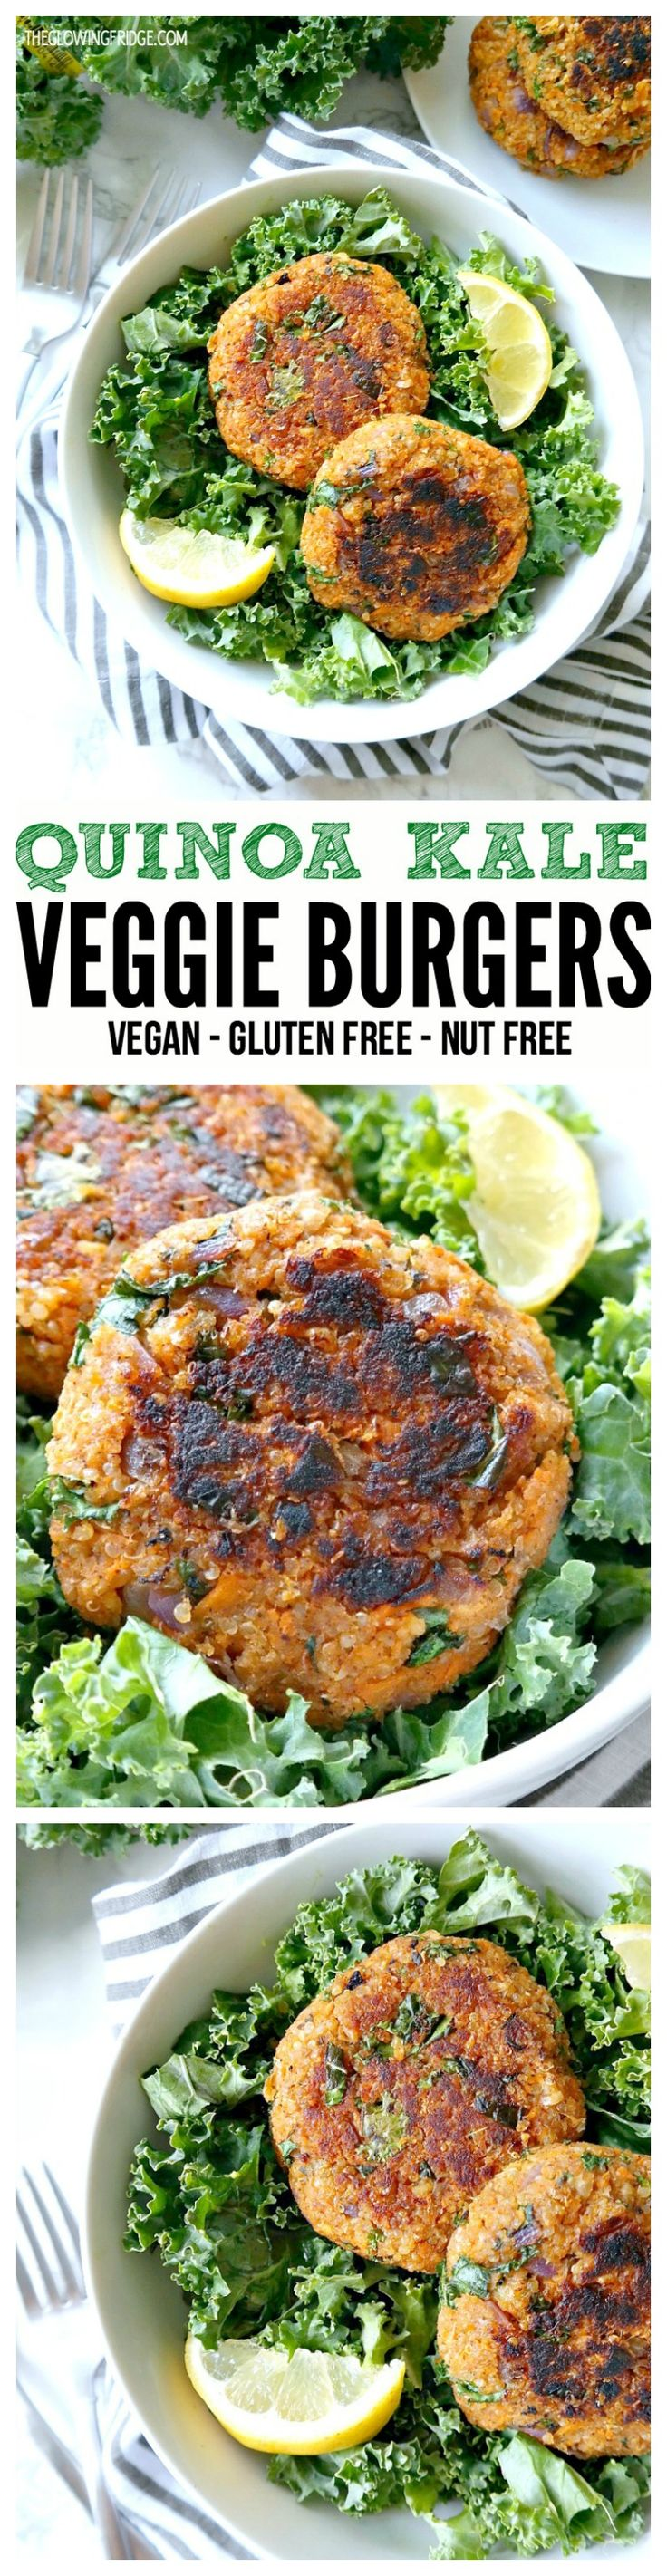 VEGAN. GLUTEN FREE. NUT FREE. Quinoa Kale Veggie Burgers. Healthy, full of flavor, hold together and super easy to make. Can be cooked 3 ways (grill, stovetop or baked in the oven!)